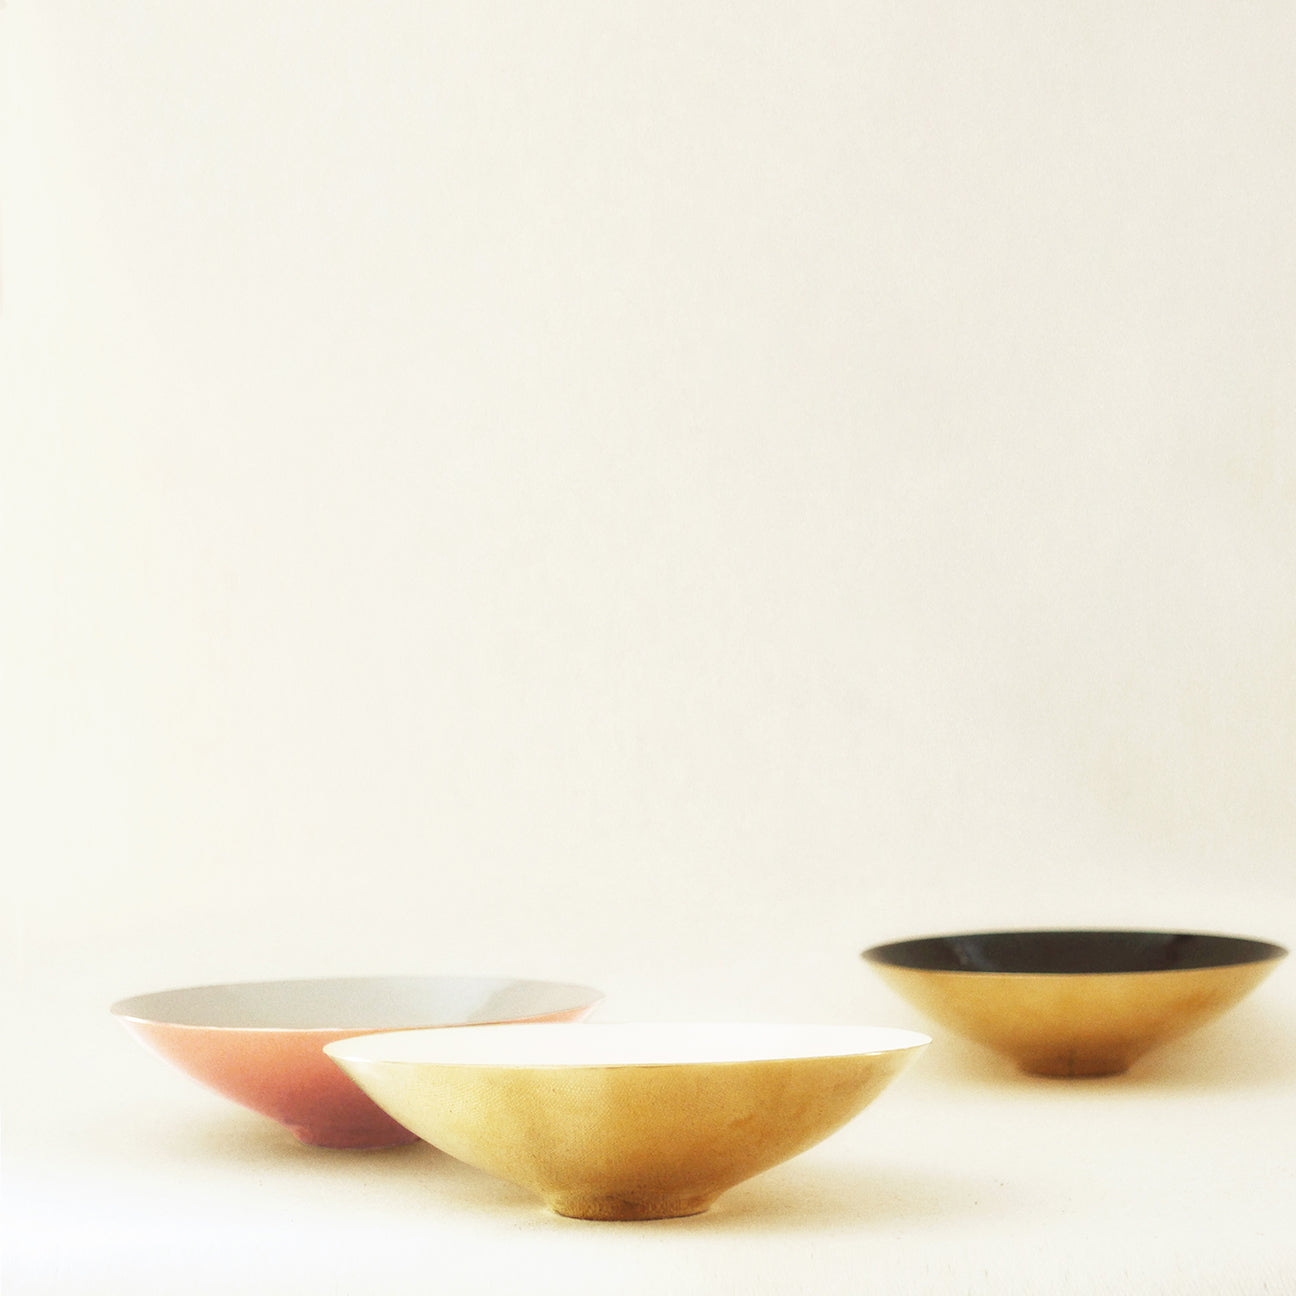 M+A NYC Enamel and Brass Plated Bowl - All colors